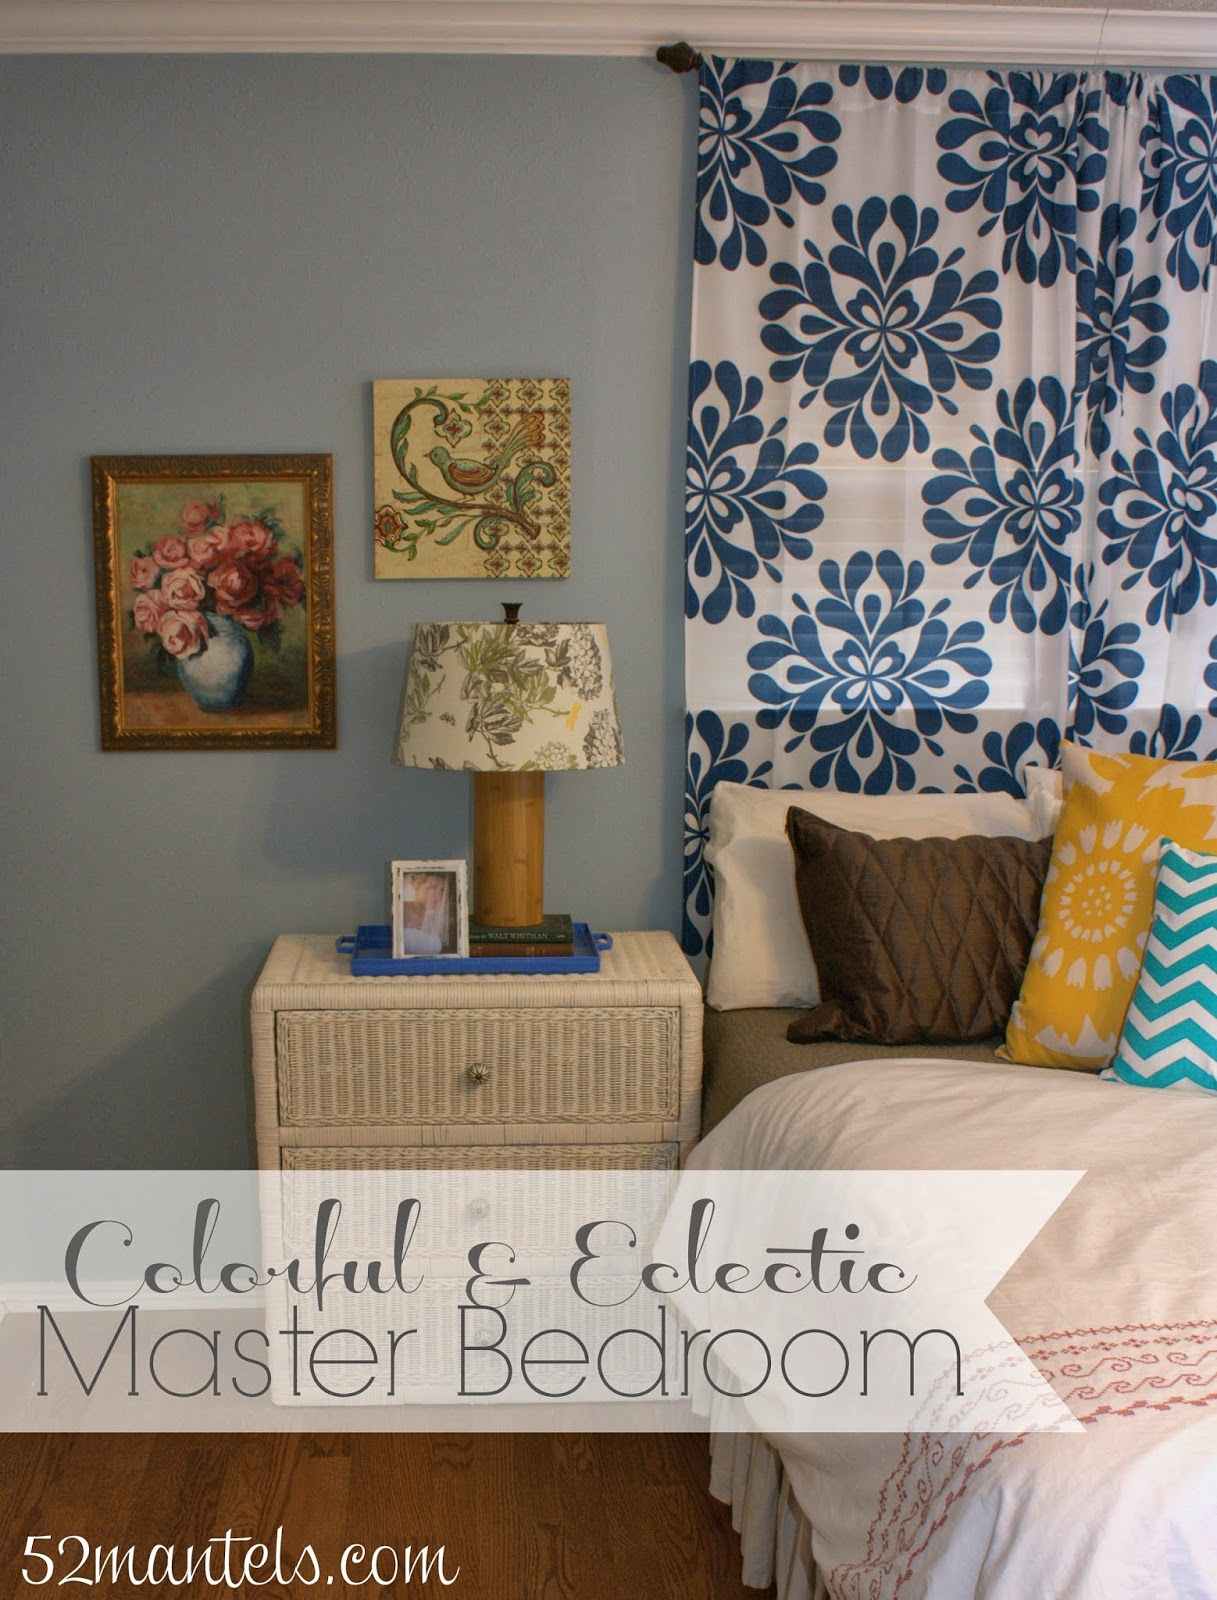 Colorful Master Bedroom 52 Mantels Be Bold Challenge Colorful Eclectic Master Bedroom